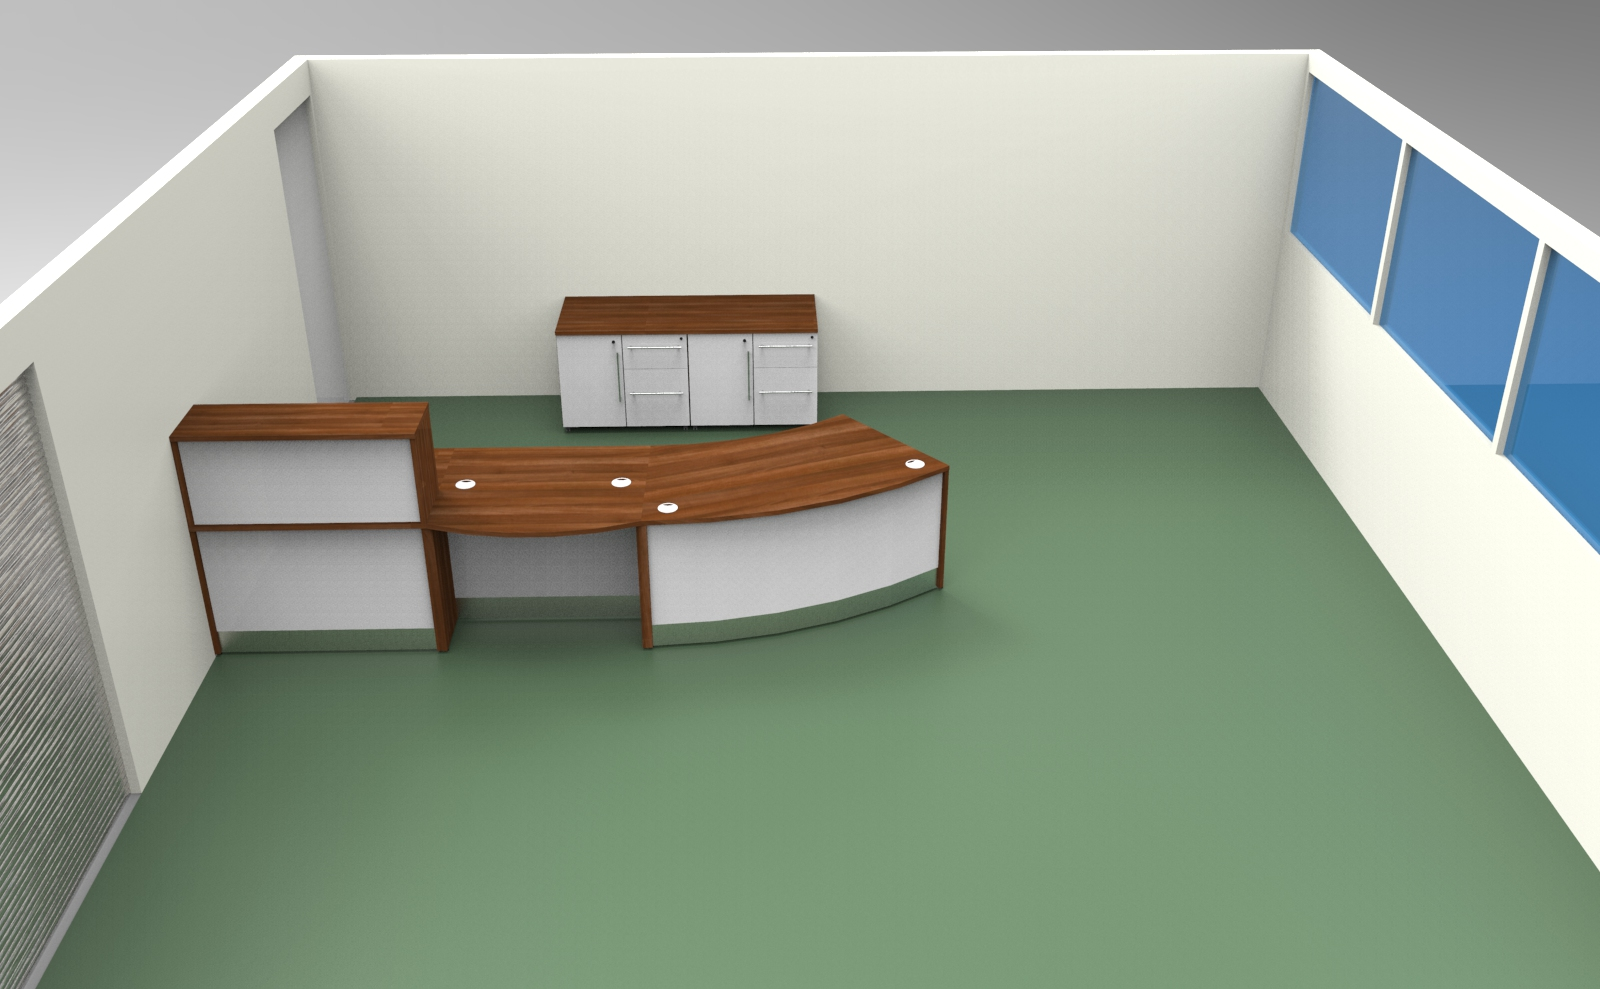 Render- Room render showing the reception desk with storage to the rear.